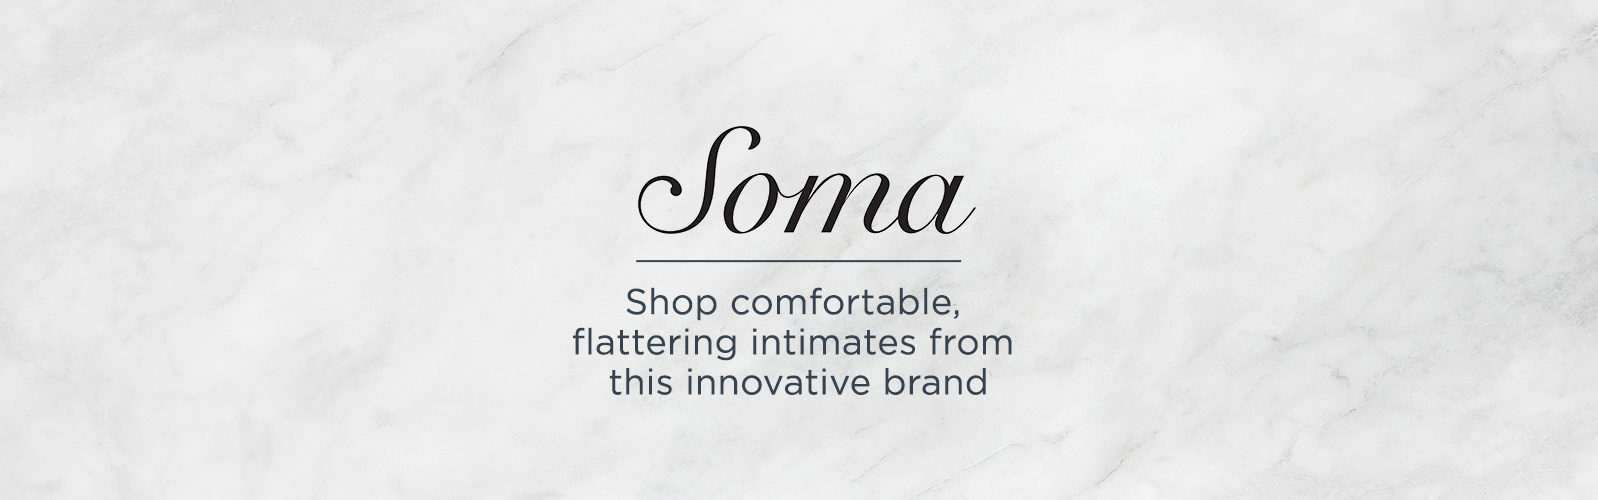 Soma. Shop comfortable, flattering intimates from this innovative brand